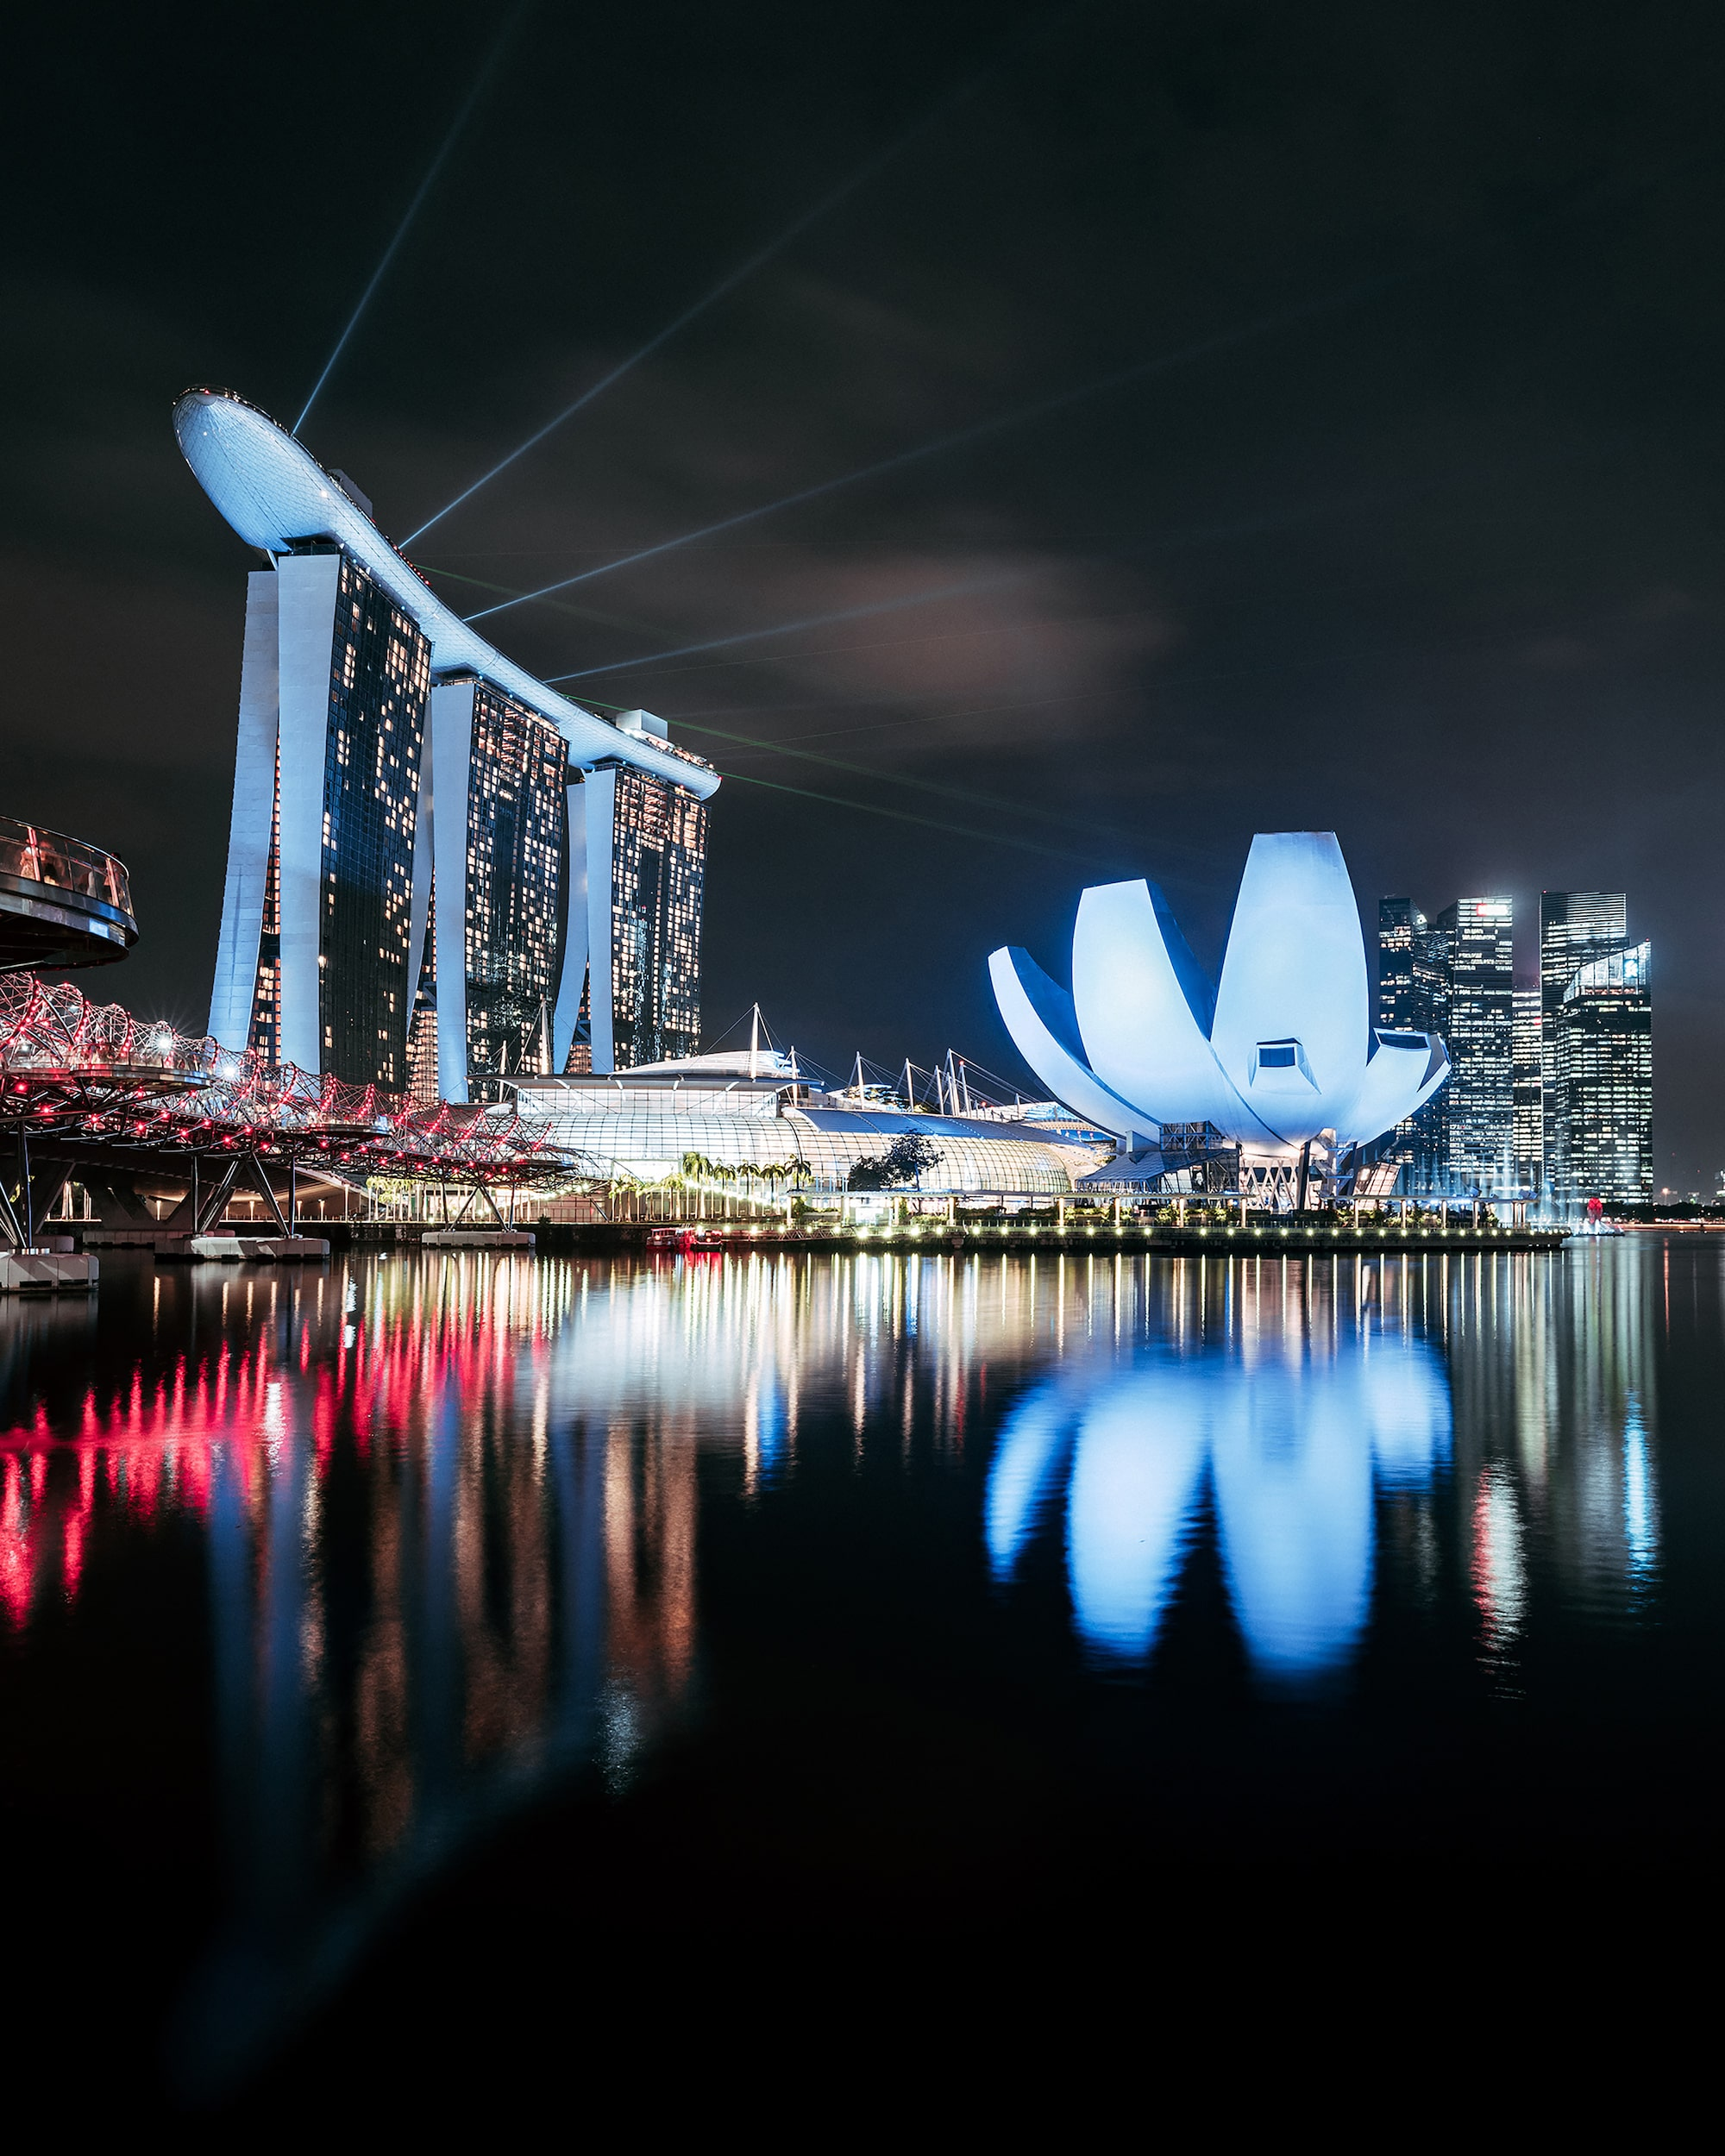 guillaume ruchon sony alpha 7RIII long exposure singapore skyline at night with buildings reflected in the marina